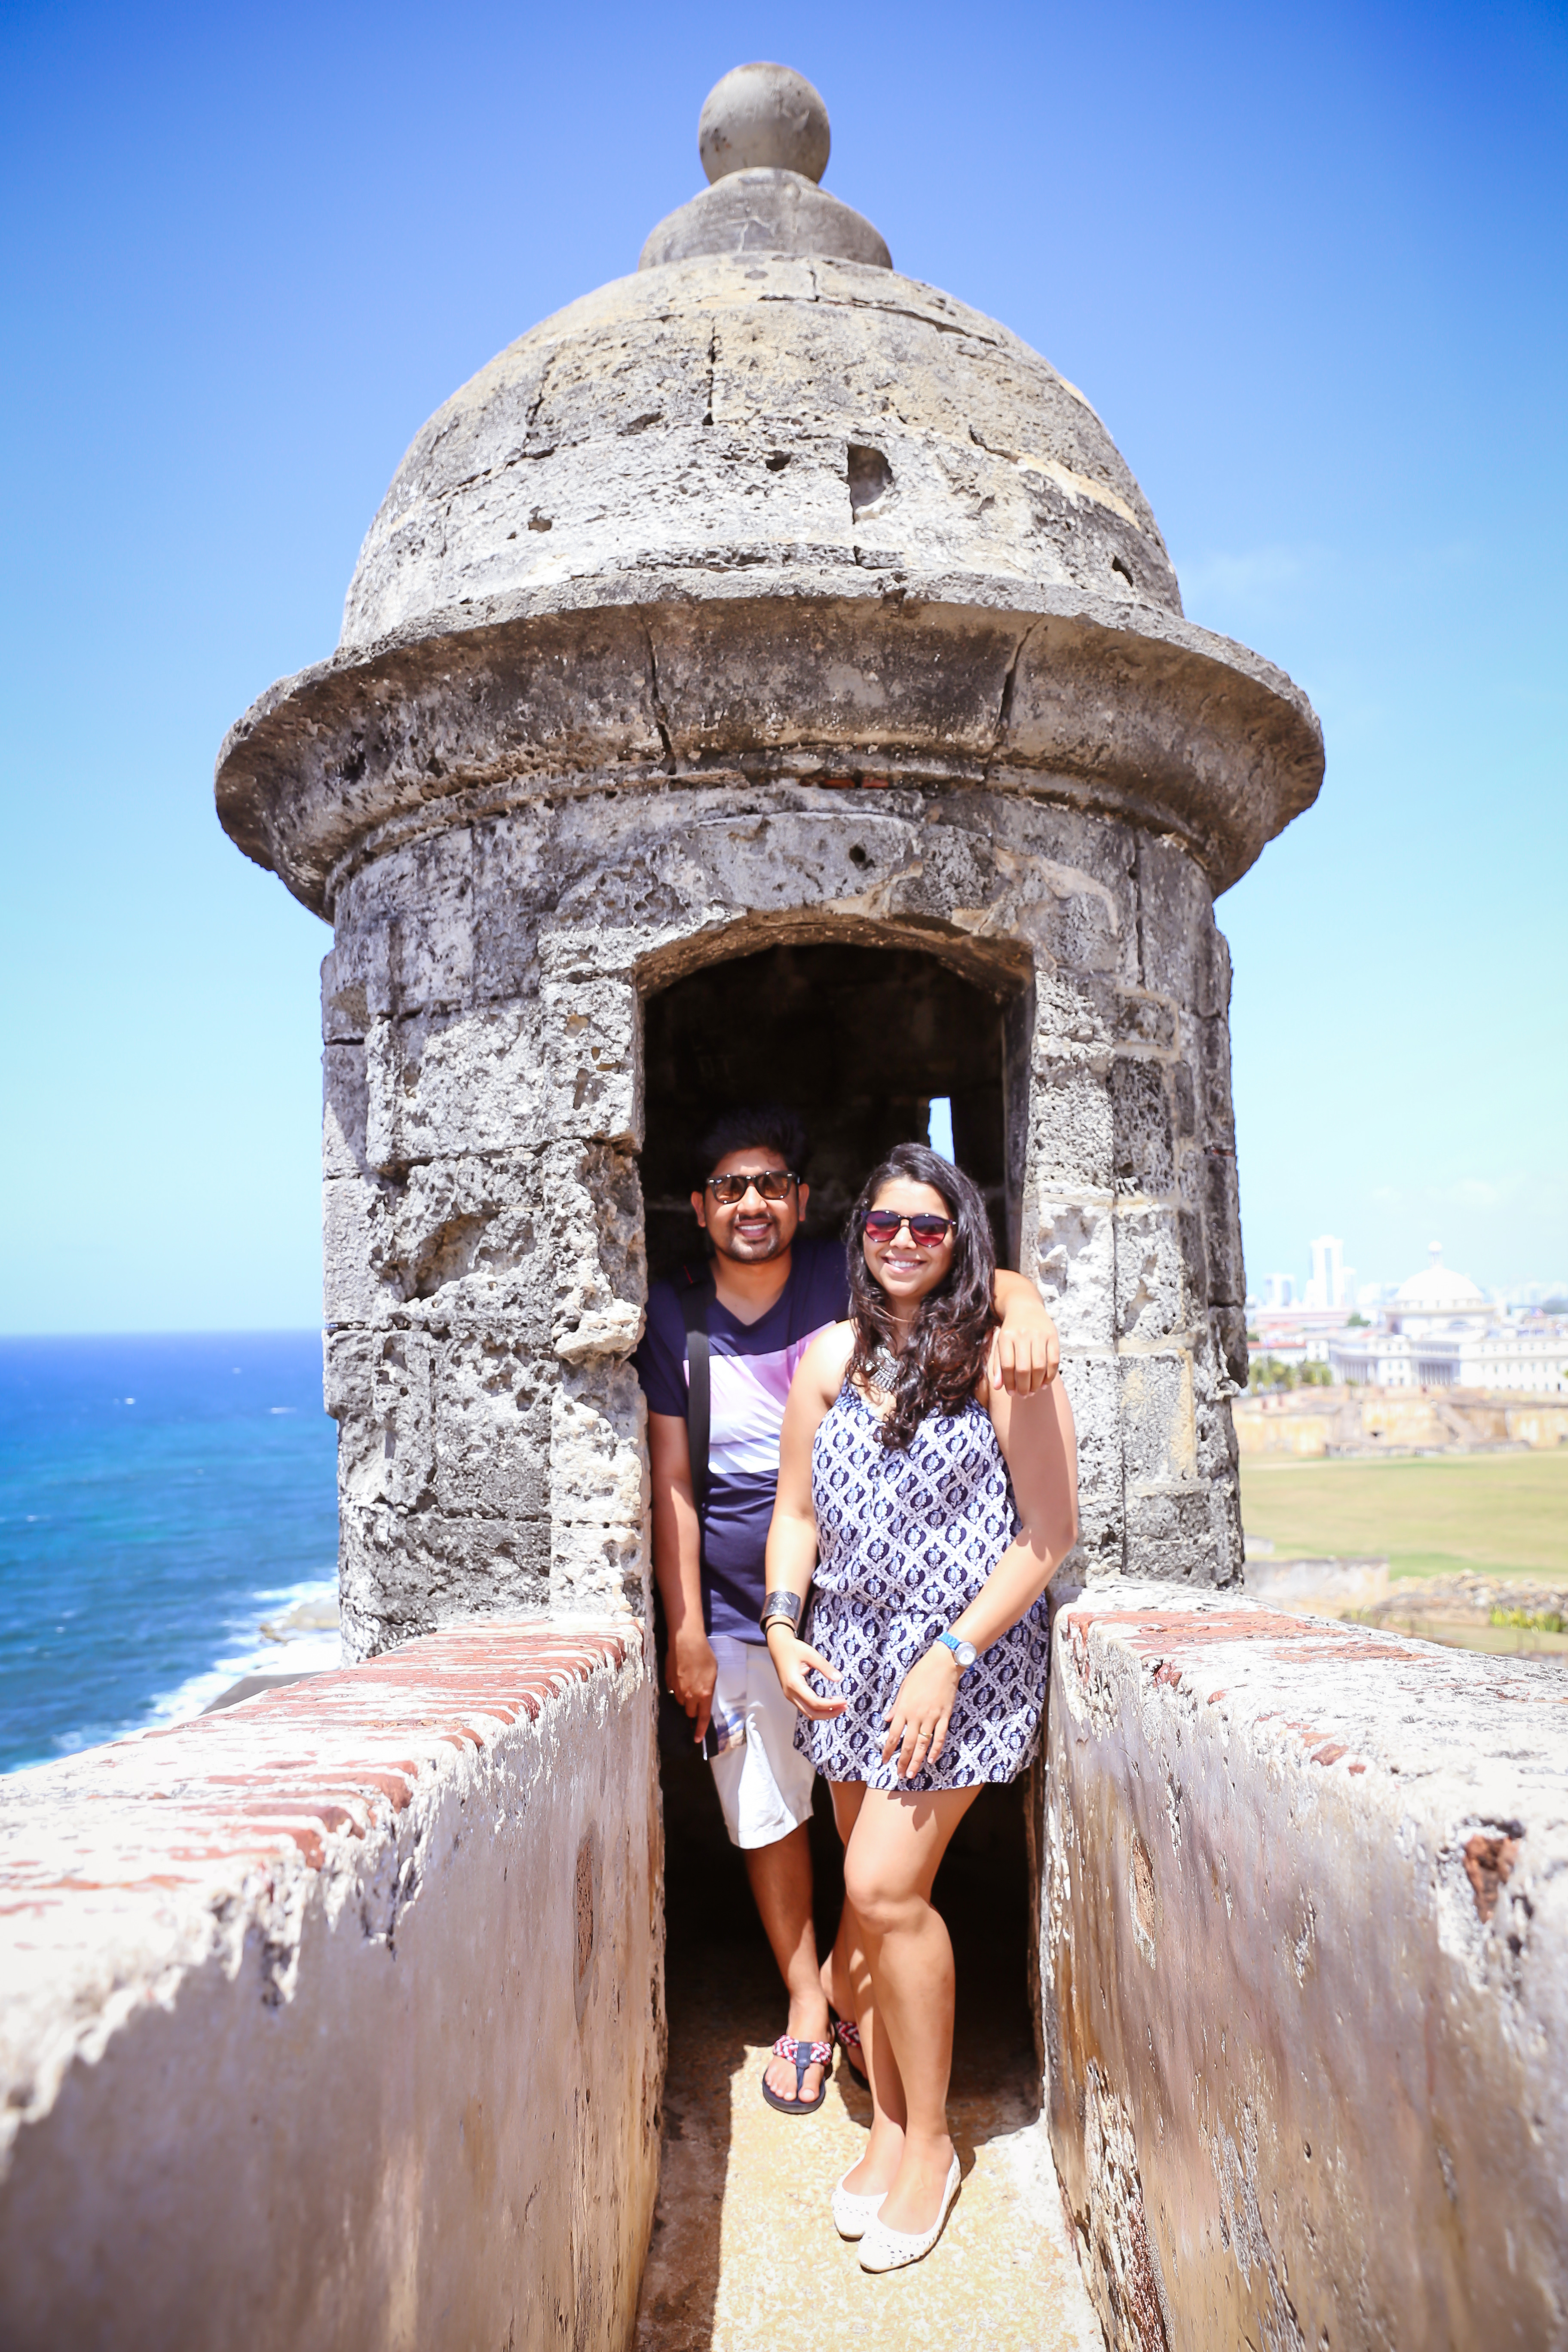 Puertorico itinerary, isla verde, puertorican cuisine, mofongo, travel, natgeo, travelworldwide, caribbearn islands, el yunque national forest, biobay, old town sanjuan, culebra islands, flamenco beach, Puerto Rico, lonelyplanet, travellers